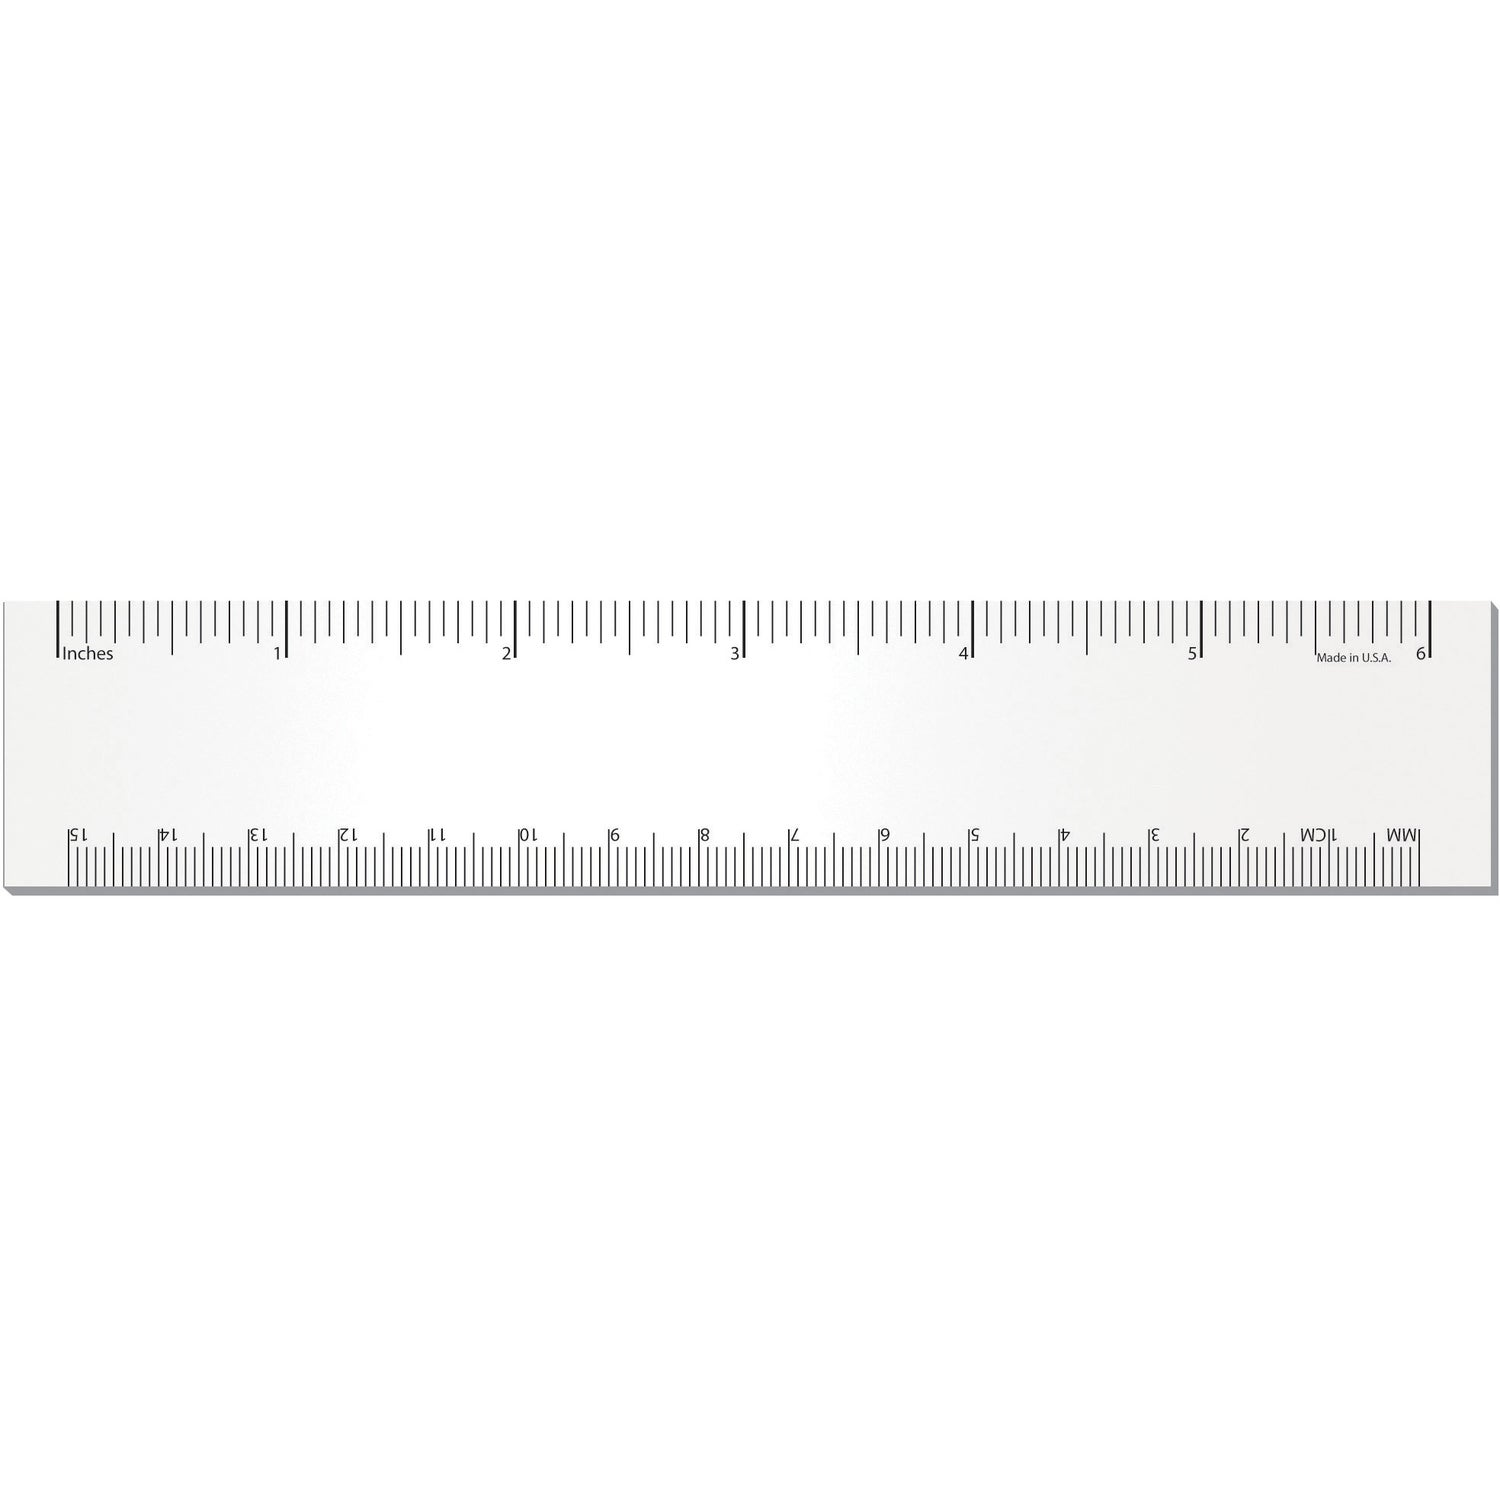 Promotional Paper Rulers With Custom Logo For $0.25 Ea. - 1000x1000 ...